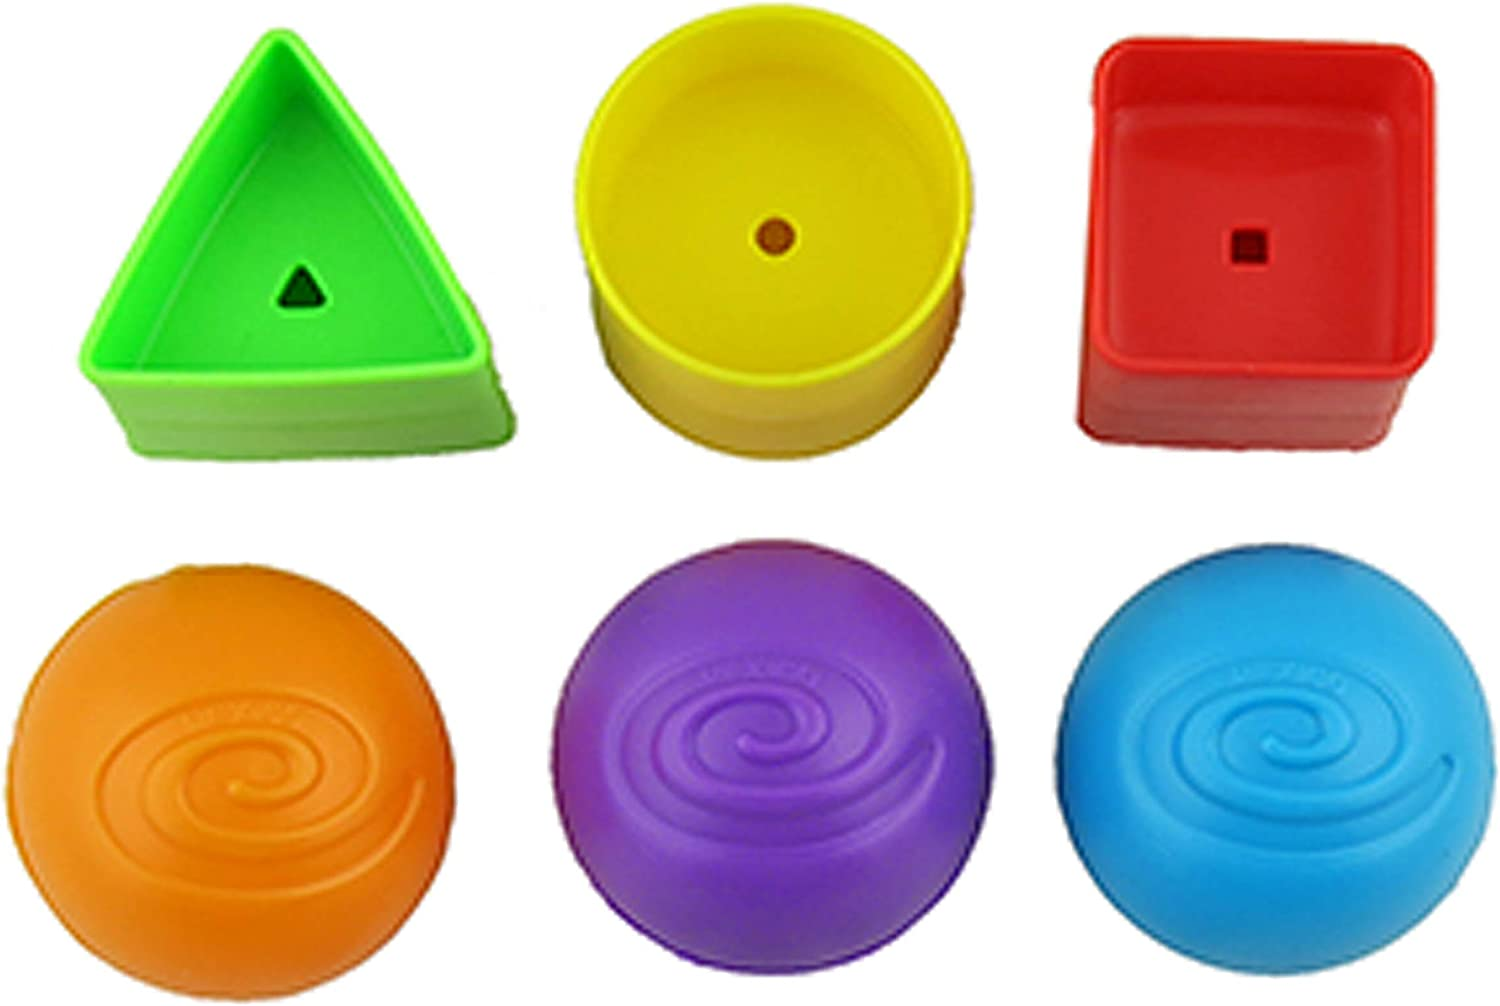 Replacement Parts for Fisher-Price Laugh and Learn Smart Stages Crawl Around Car - DJD09 ~ 3 Balls and 3 Shapes ~ Also Works with Models CJM93 and Y7749